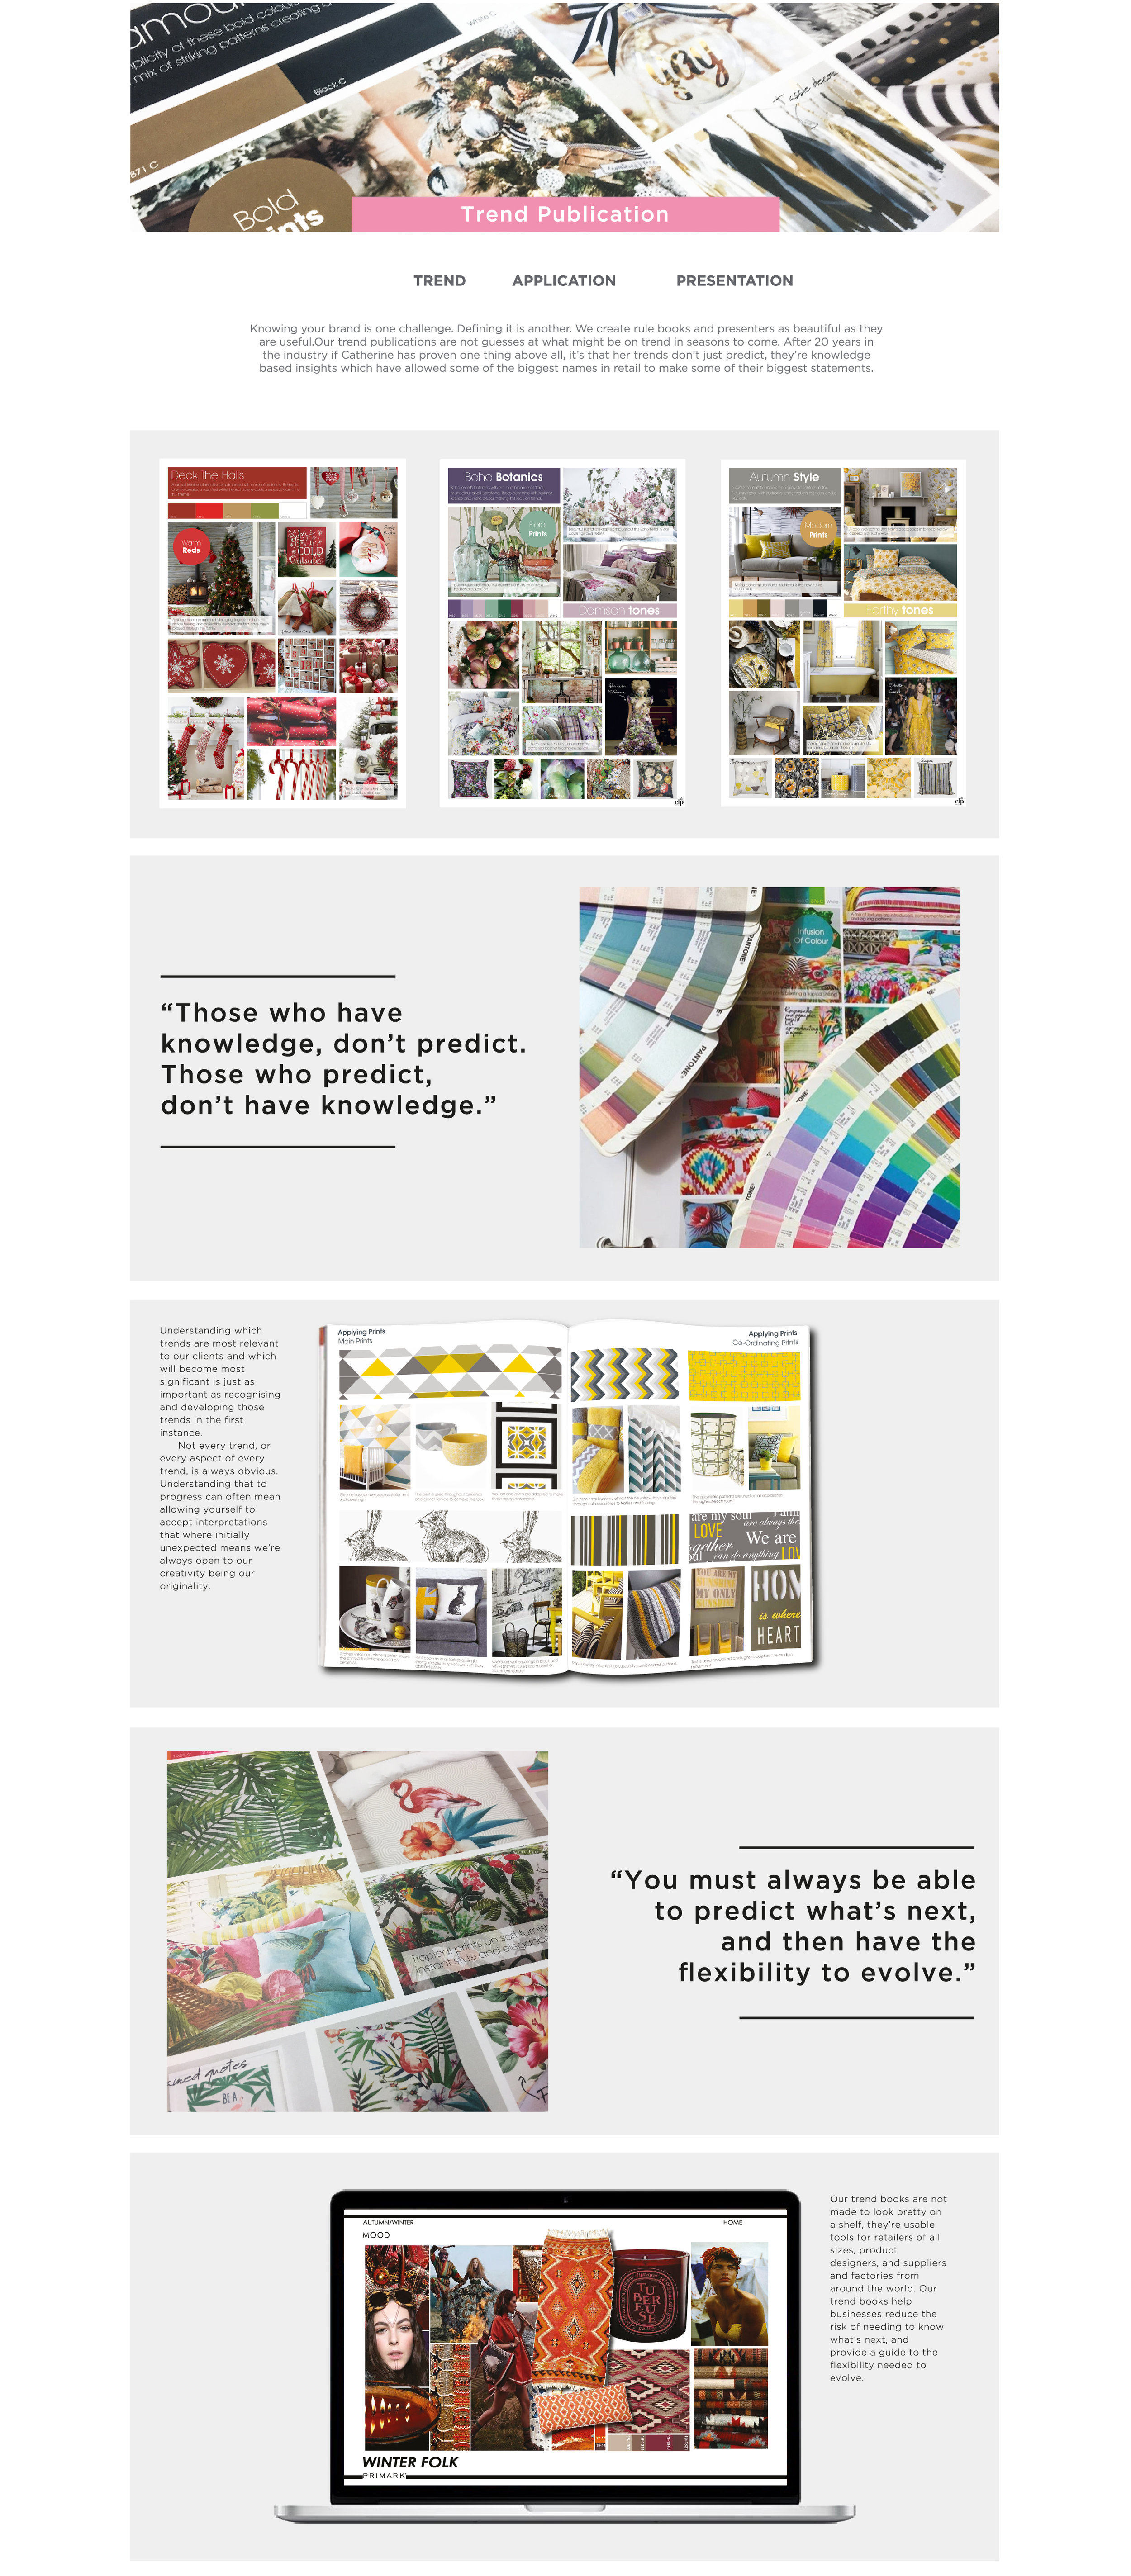 NEW CLP WEB LAYOUT STYLE GUIDES-01.jpg